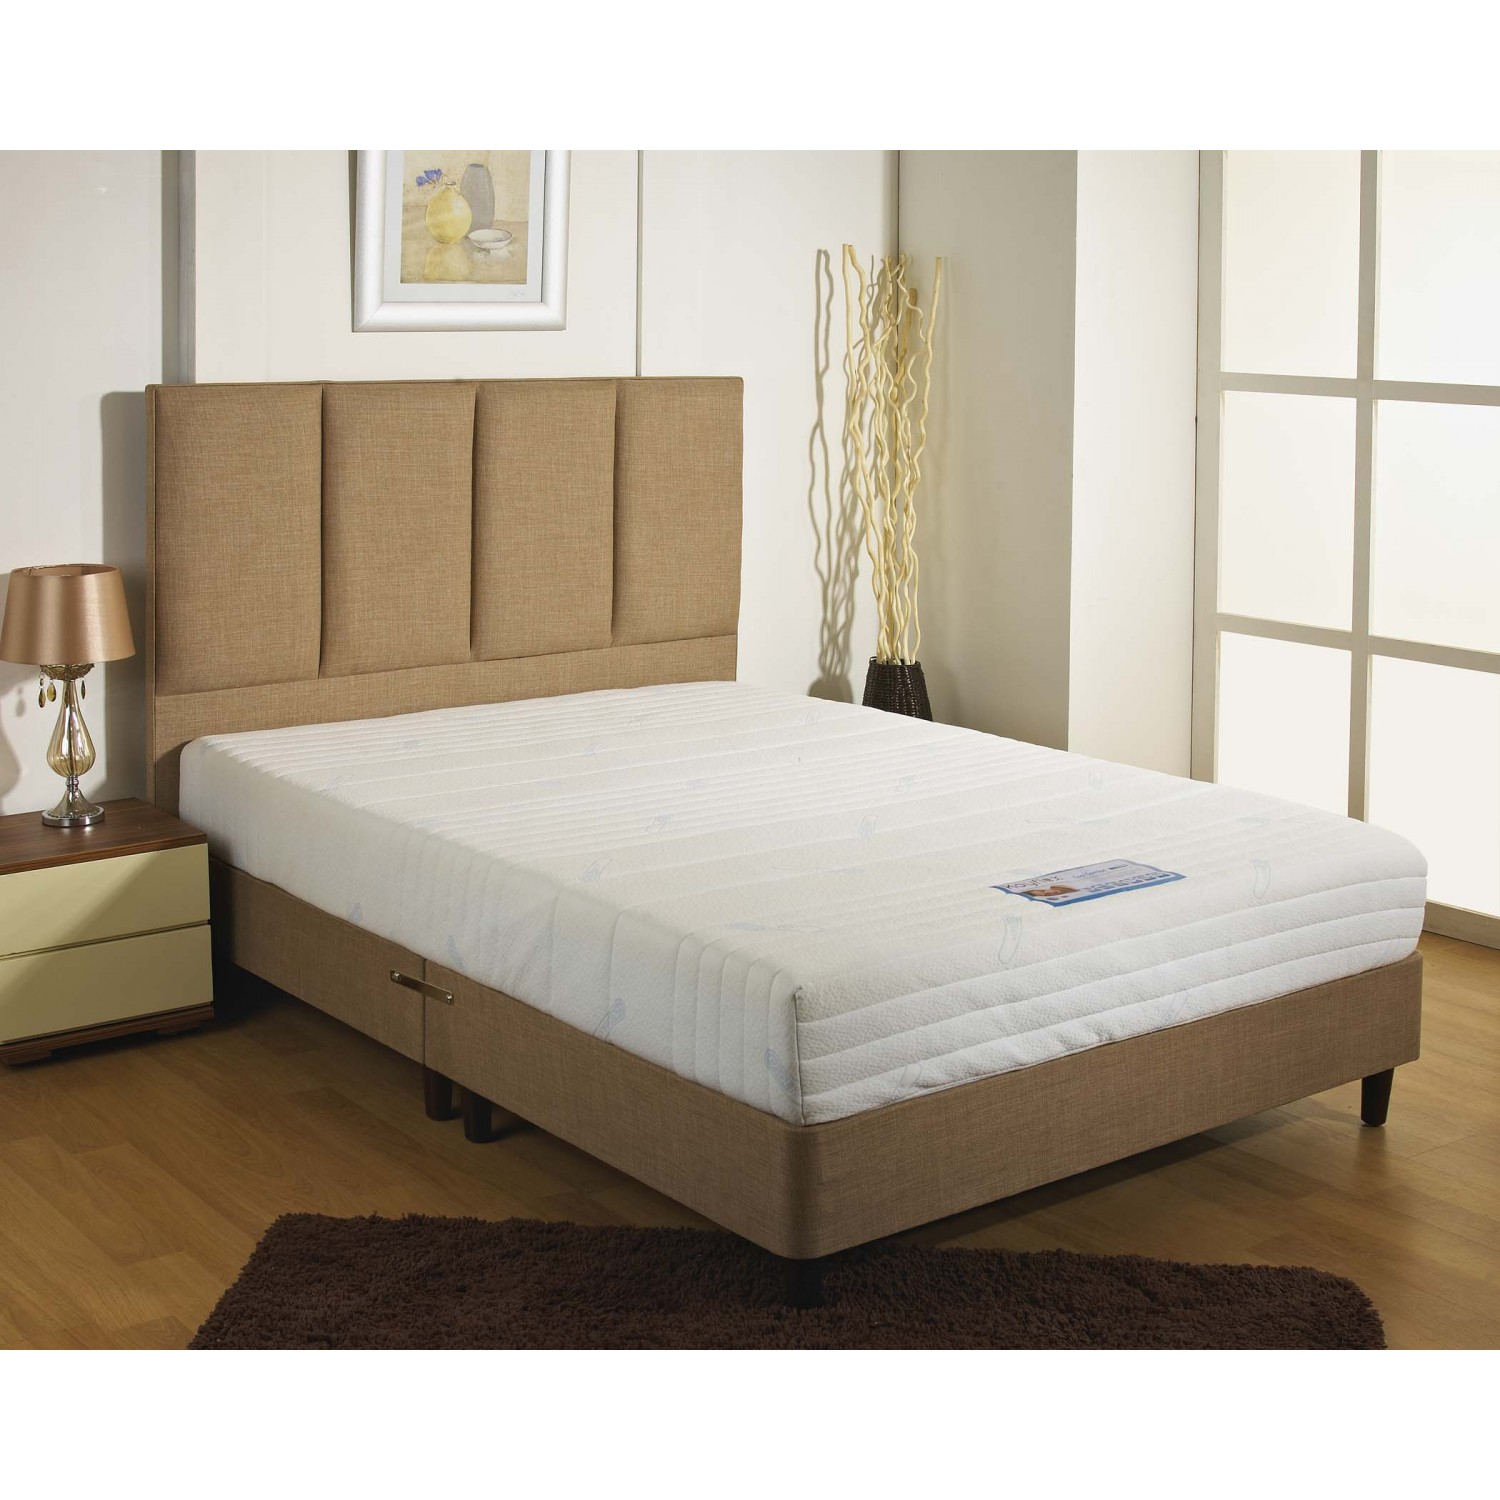 From Kayflex Coolmax Memory Foam Mattress